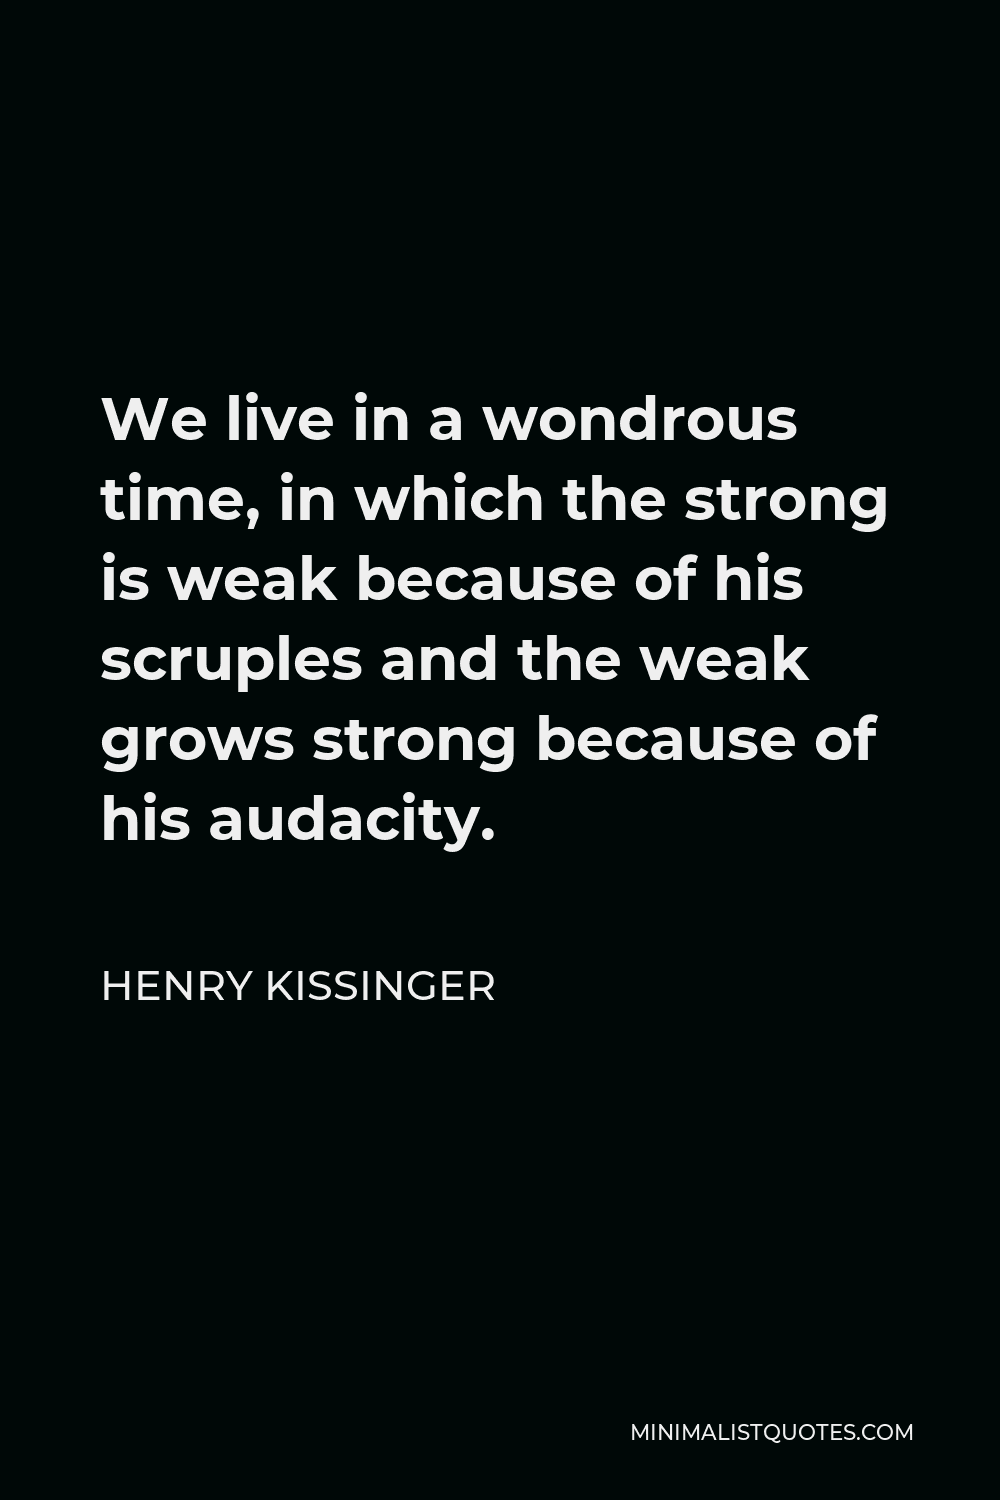 Henry Kissinger Quote - We live in a wondrous time, in which the strong is weak because of his scruples and the weak grows strong because of his audacity.